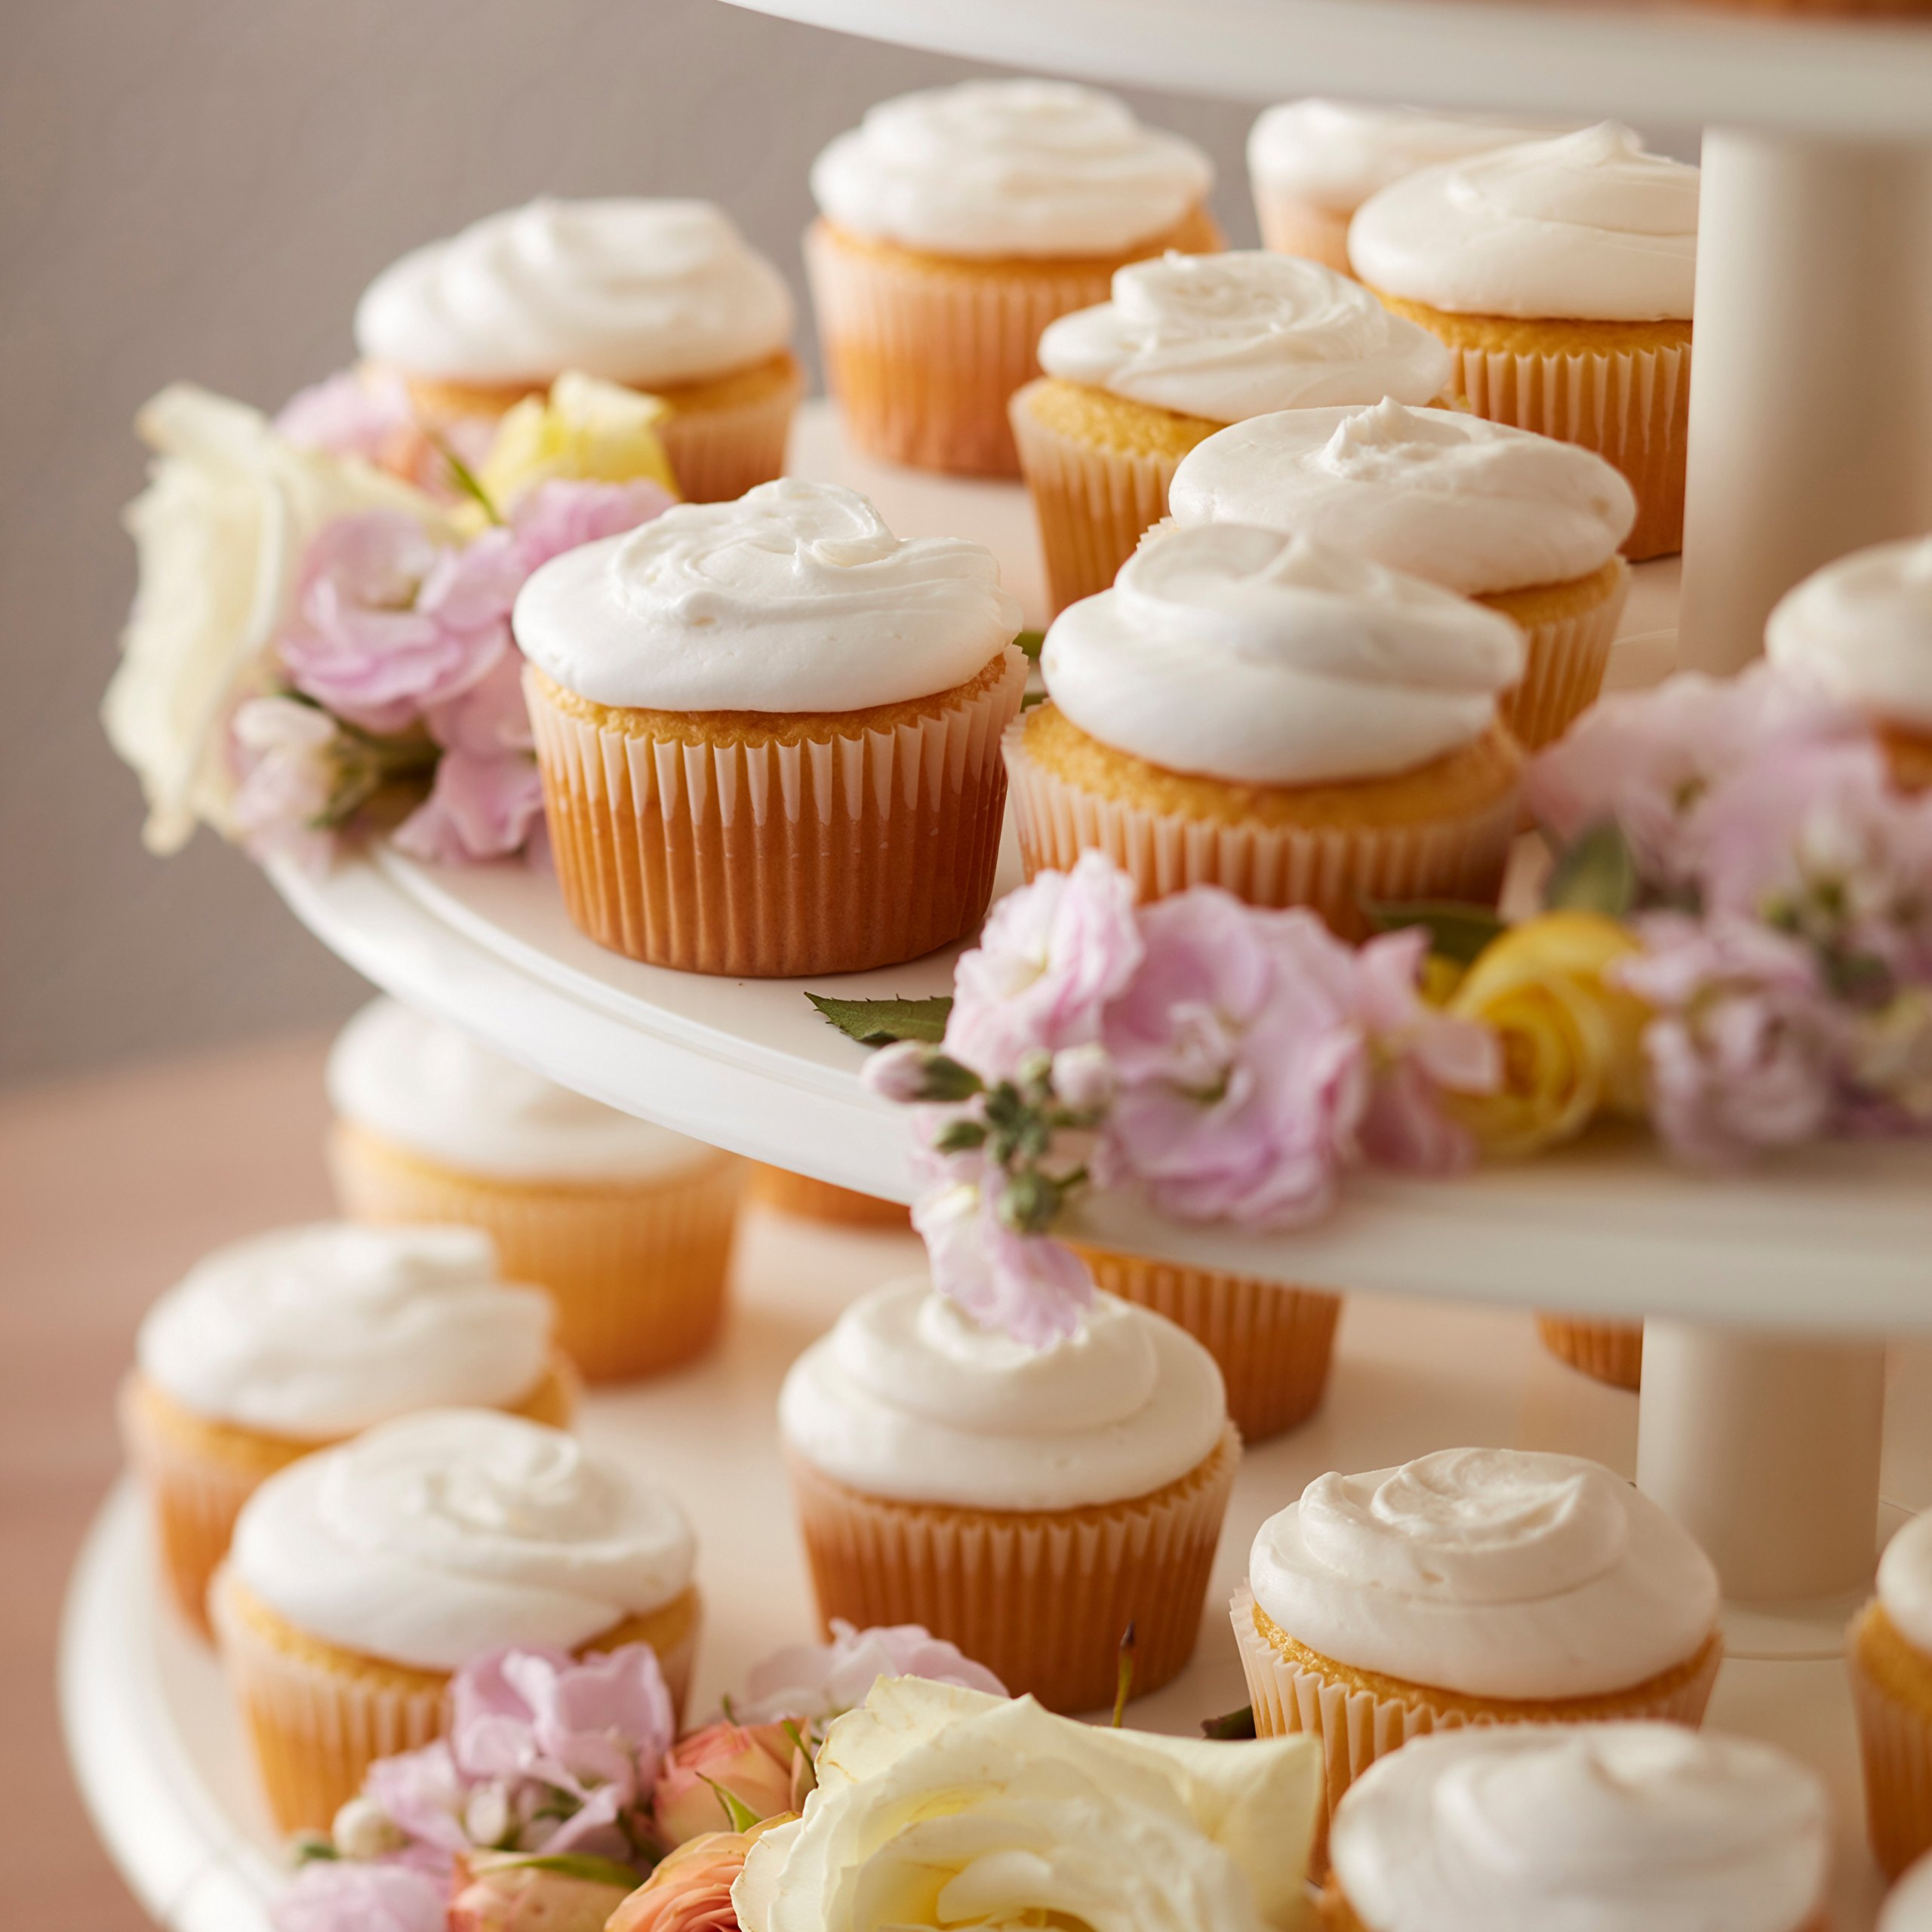 Wilton Towering Tiers Cupcake and Dessert Stand, Great for Displaying Cupcakes, Danishes and Your Favorite Hors d'Oeuvres, White, 3-foot, 28-Piece by Wilton (Image #9)